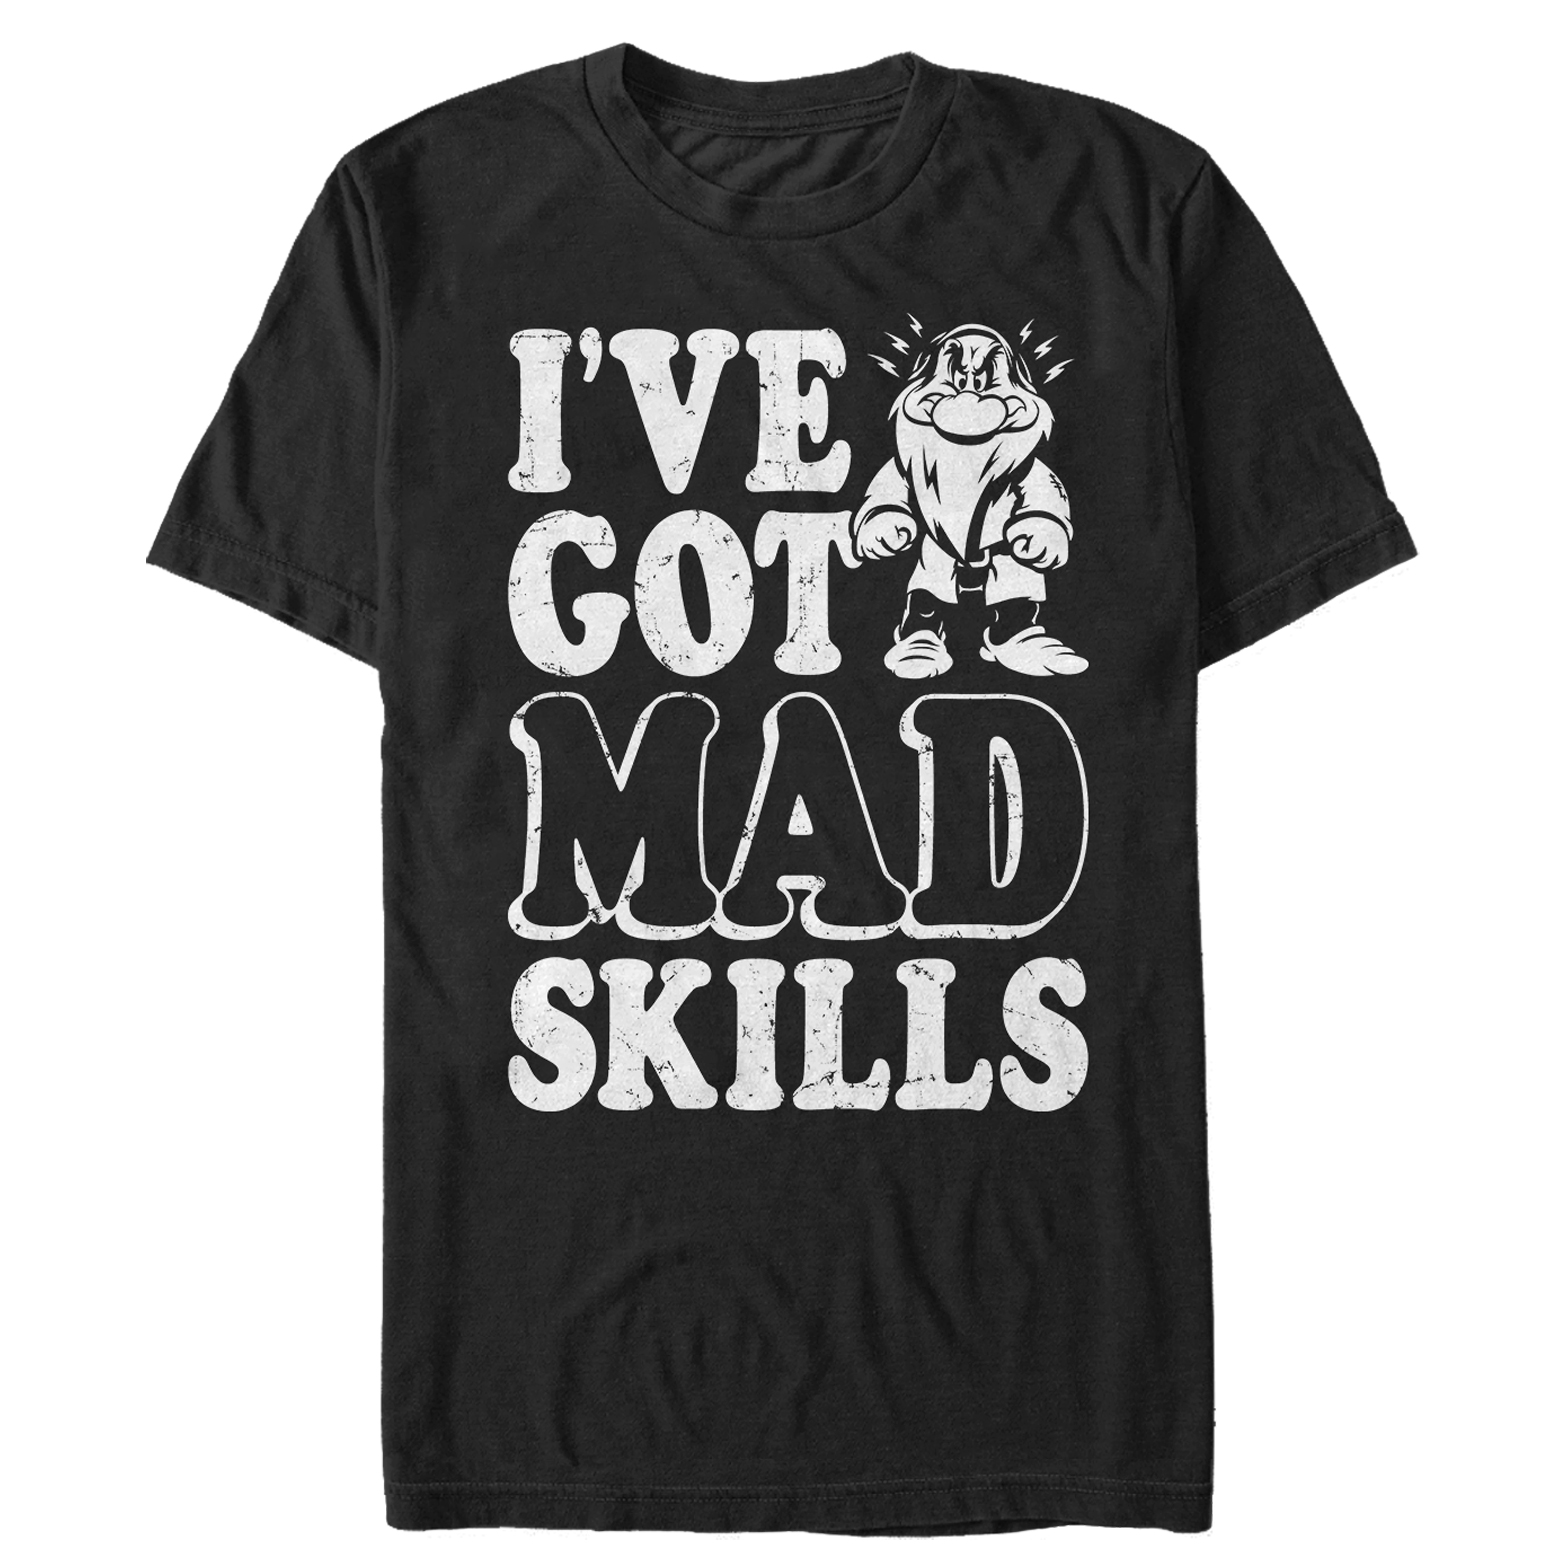 Snow White and the Seven Dwarves Men's Grumpy Mad Skills T-Shirt